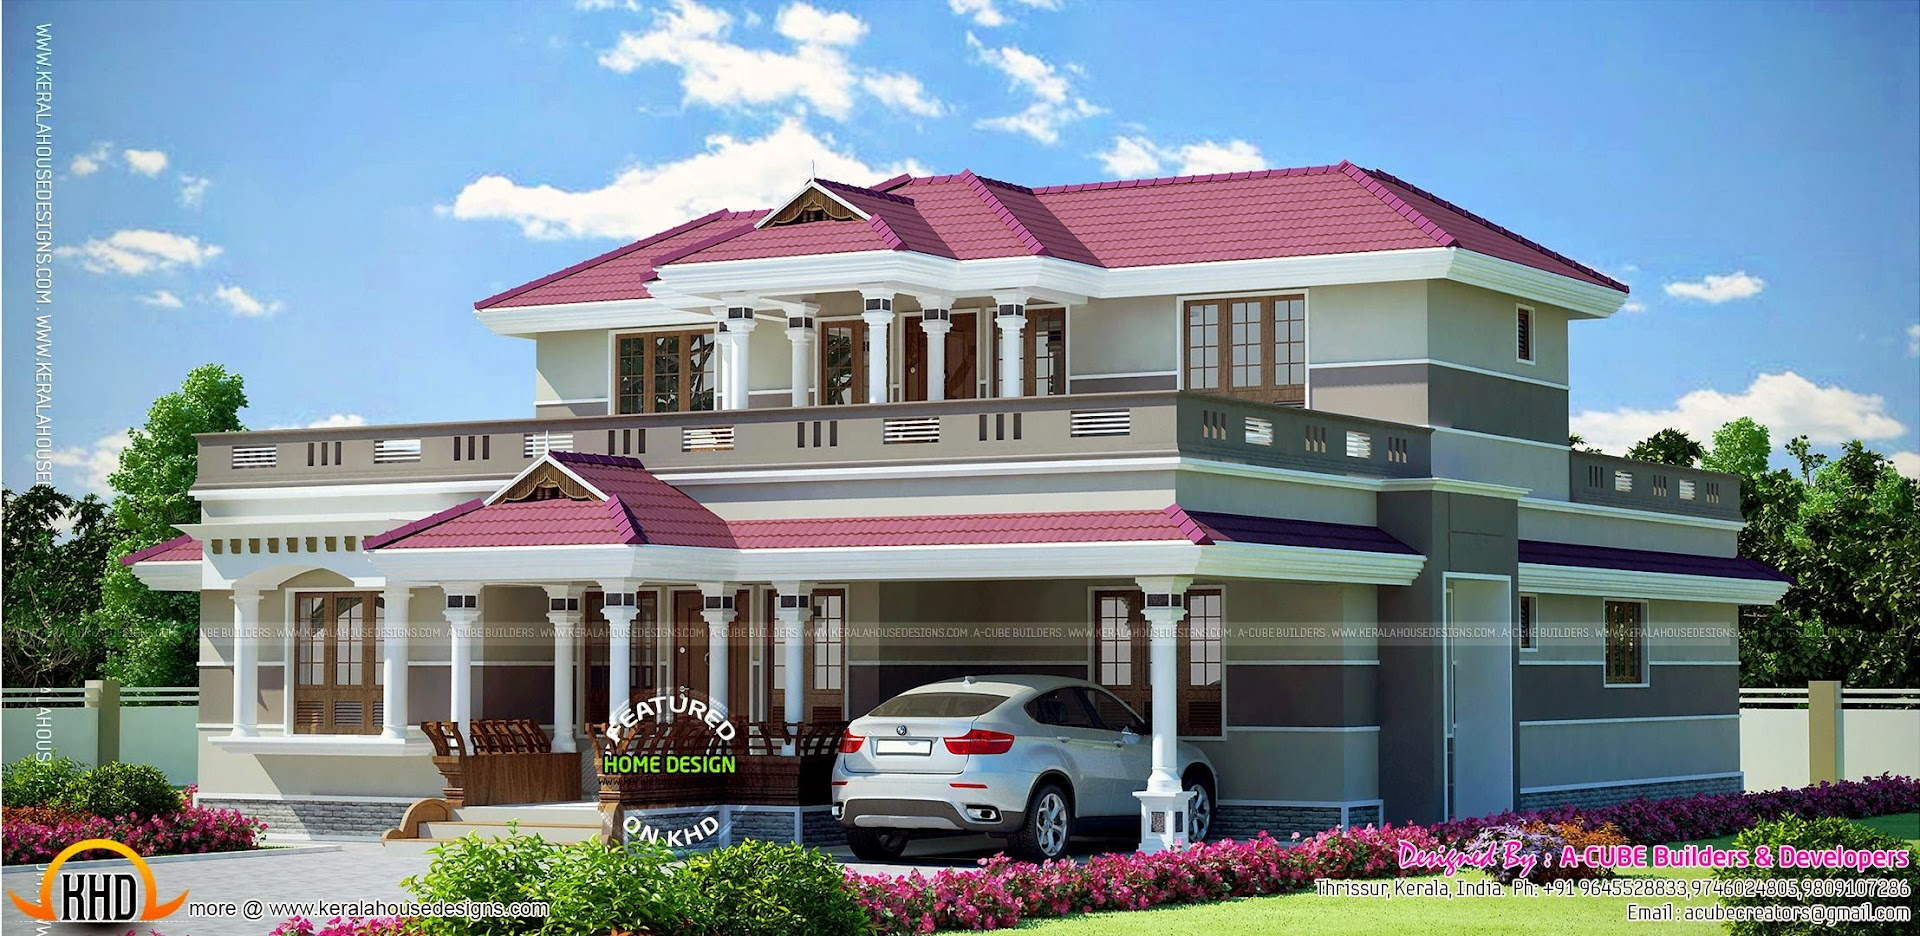 Grand kerala home design kerala home design and floor plans for Grand home designs